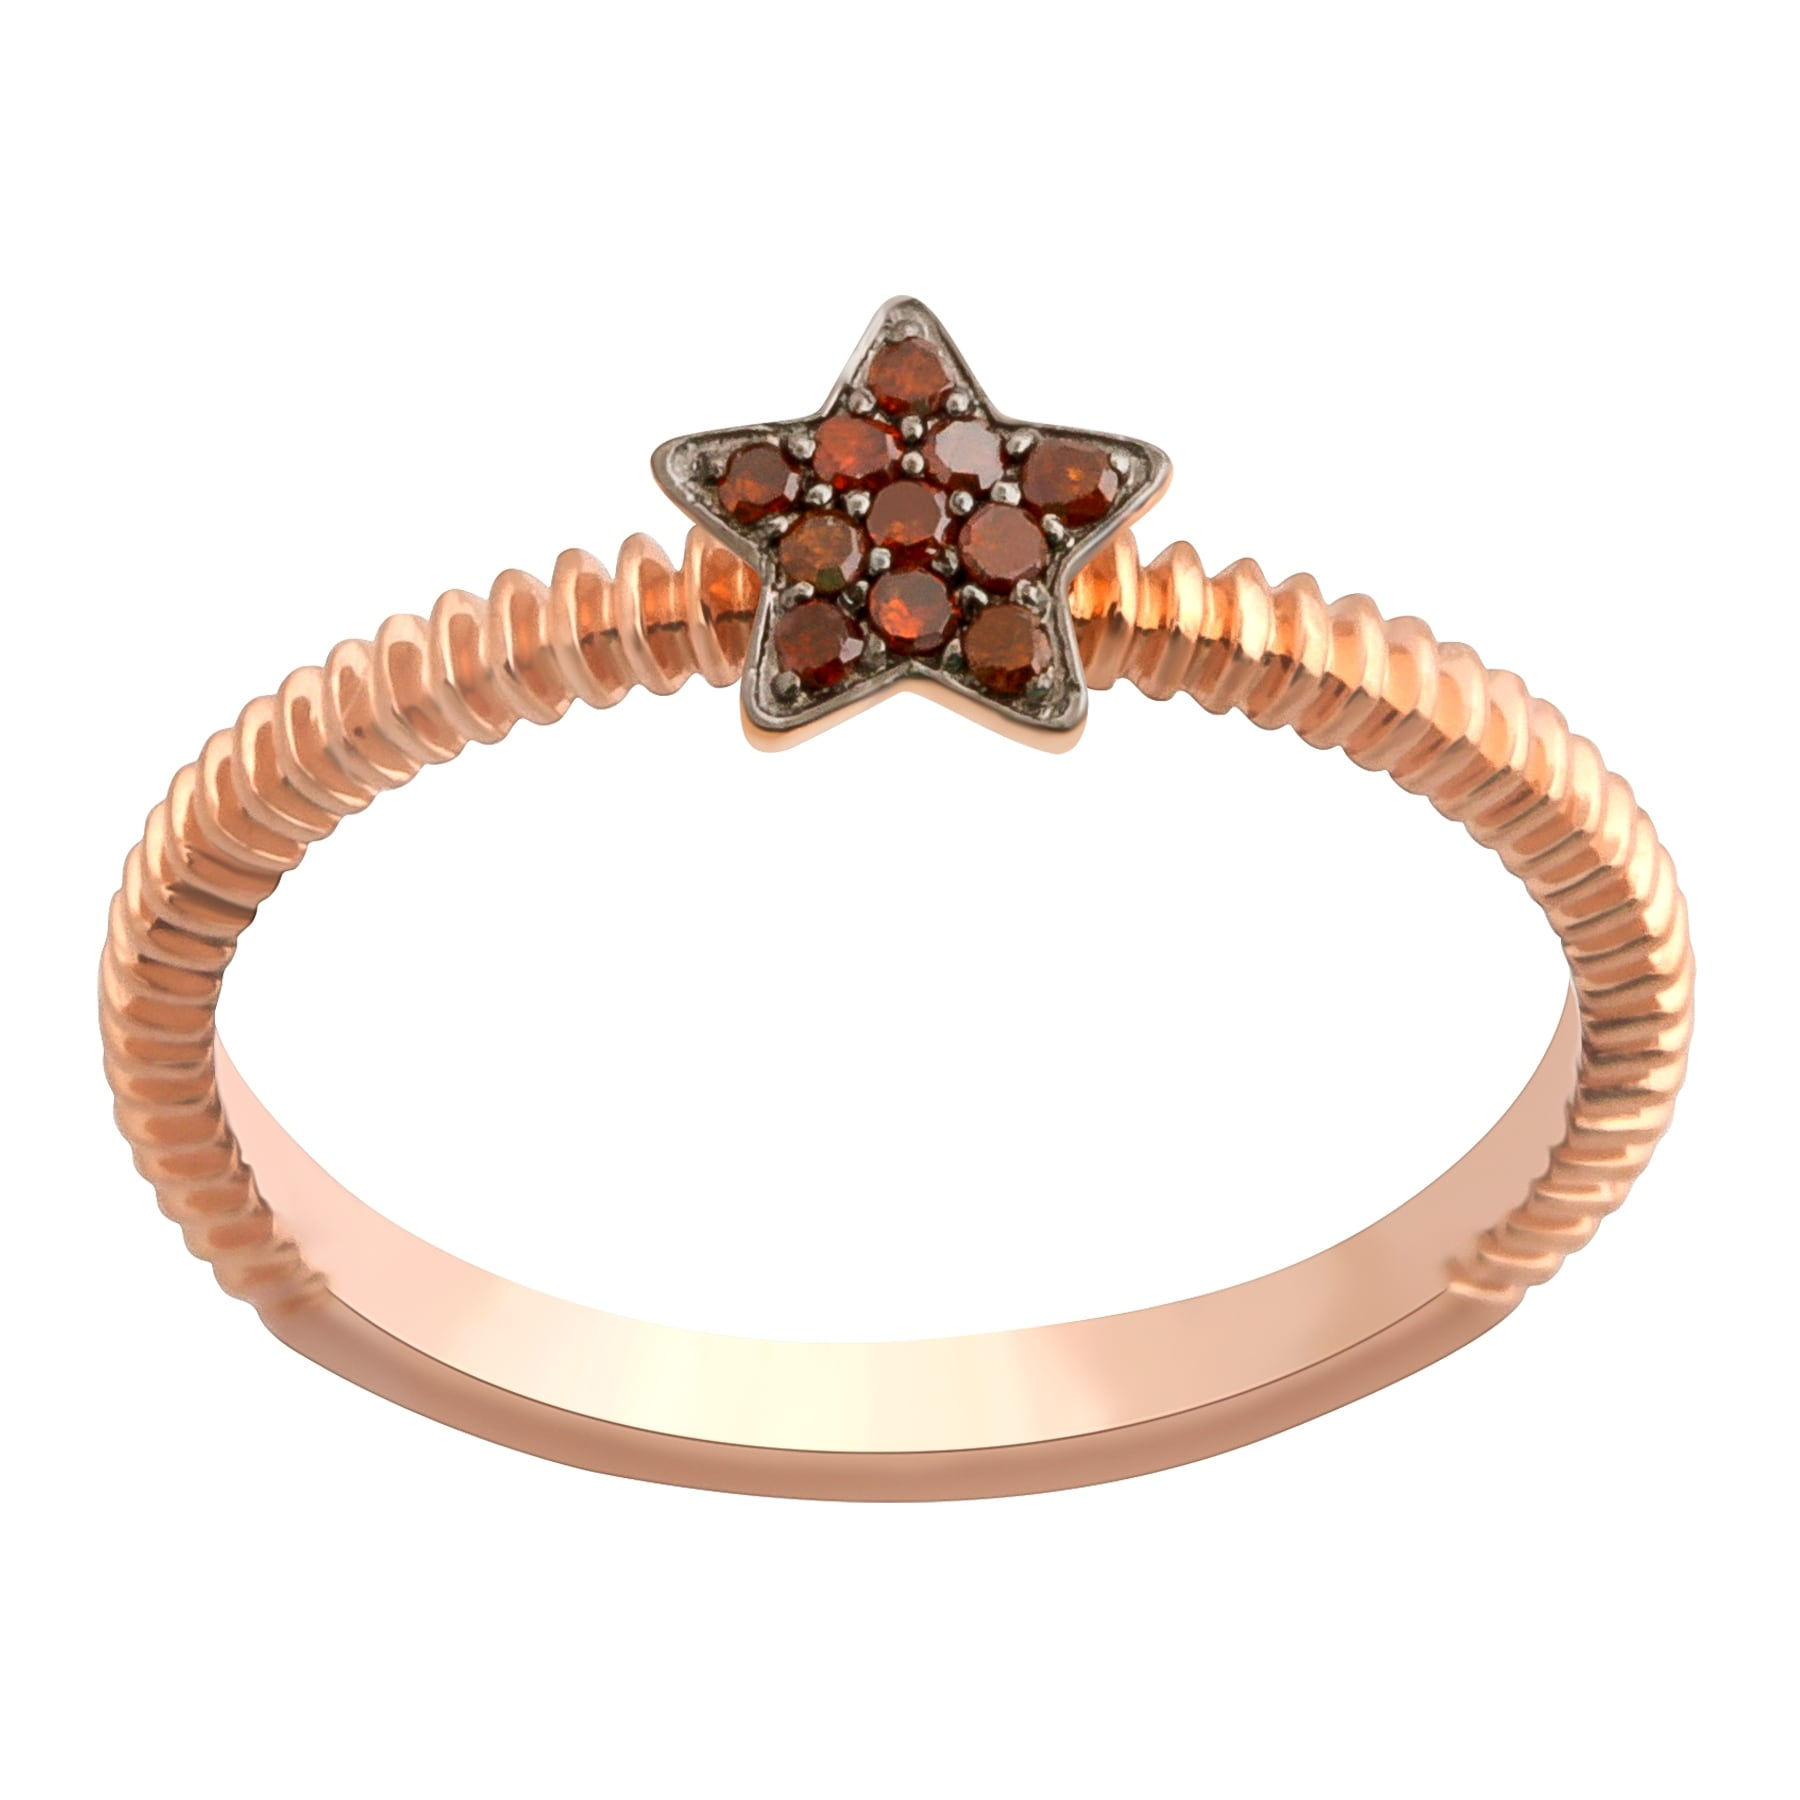 Prism Jewel 0.08Ct Round Cognac Diamond Star Shaped Fancy Ring - Thumbnail 0